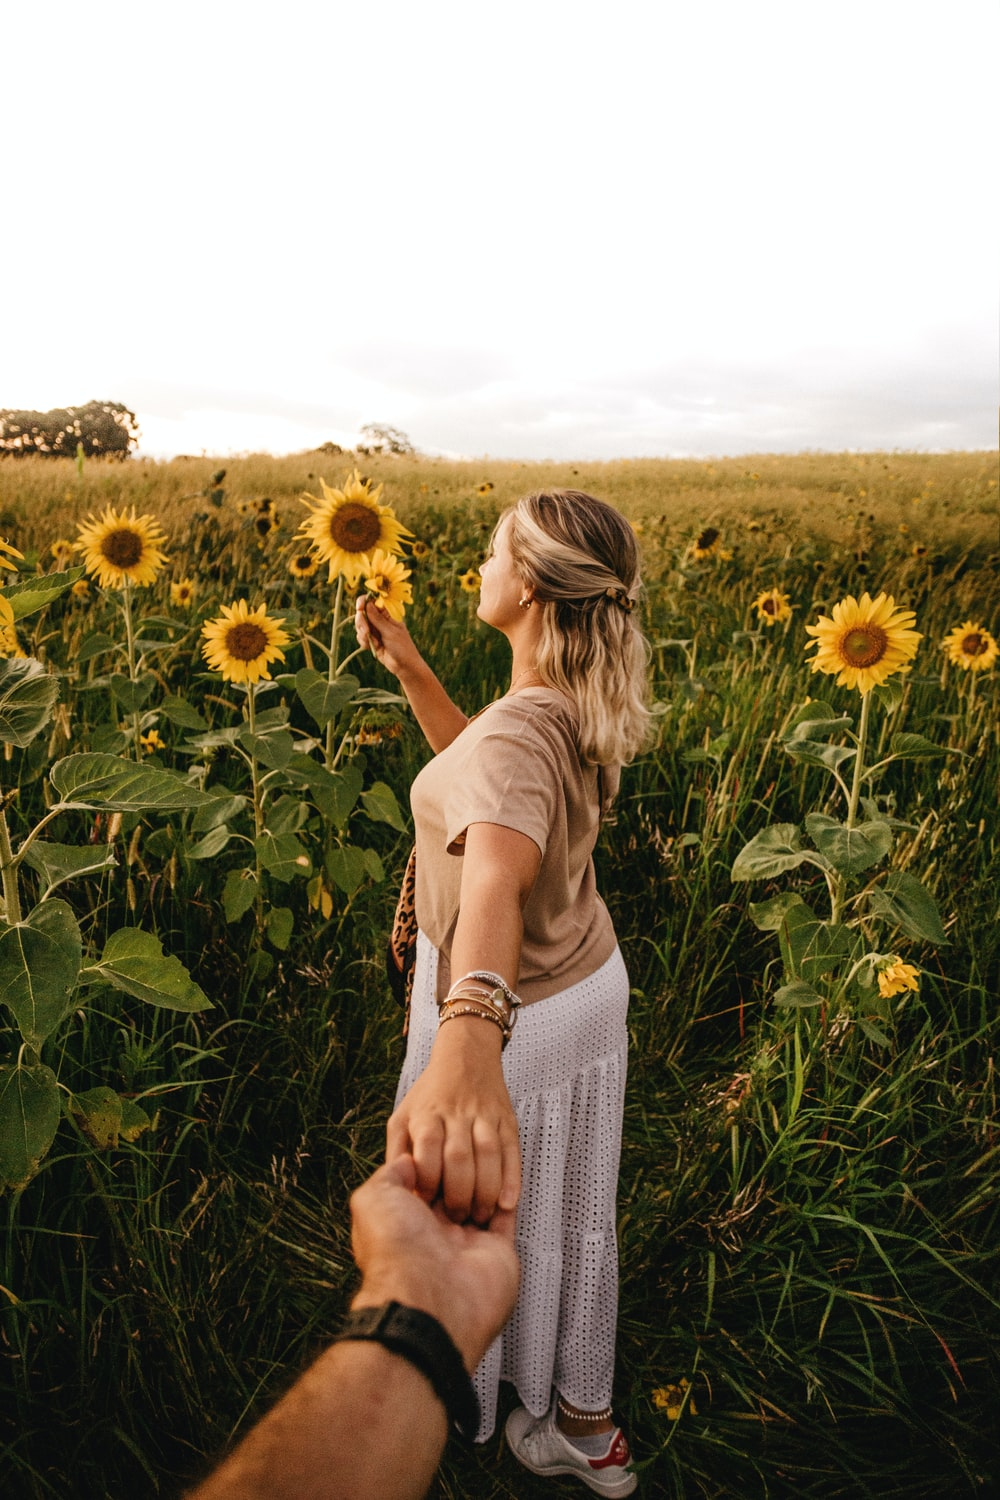 woman in white tank top standing on sunflower field during daytime